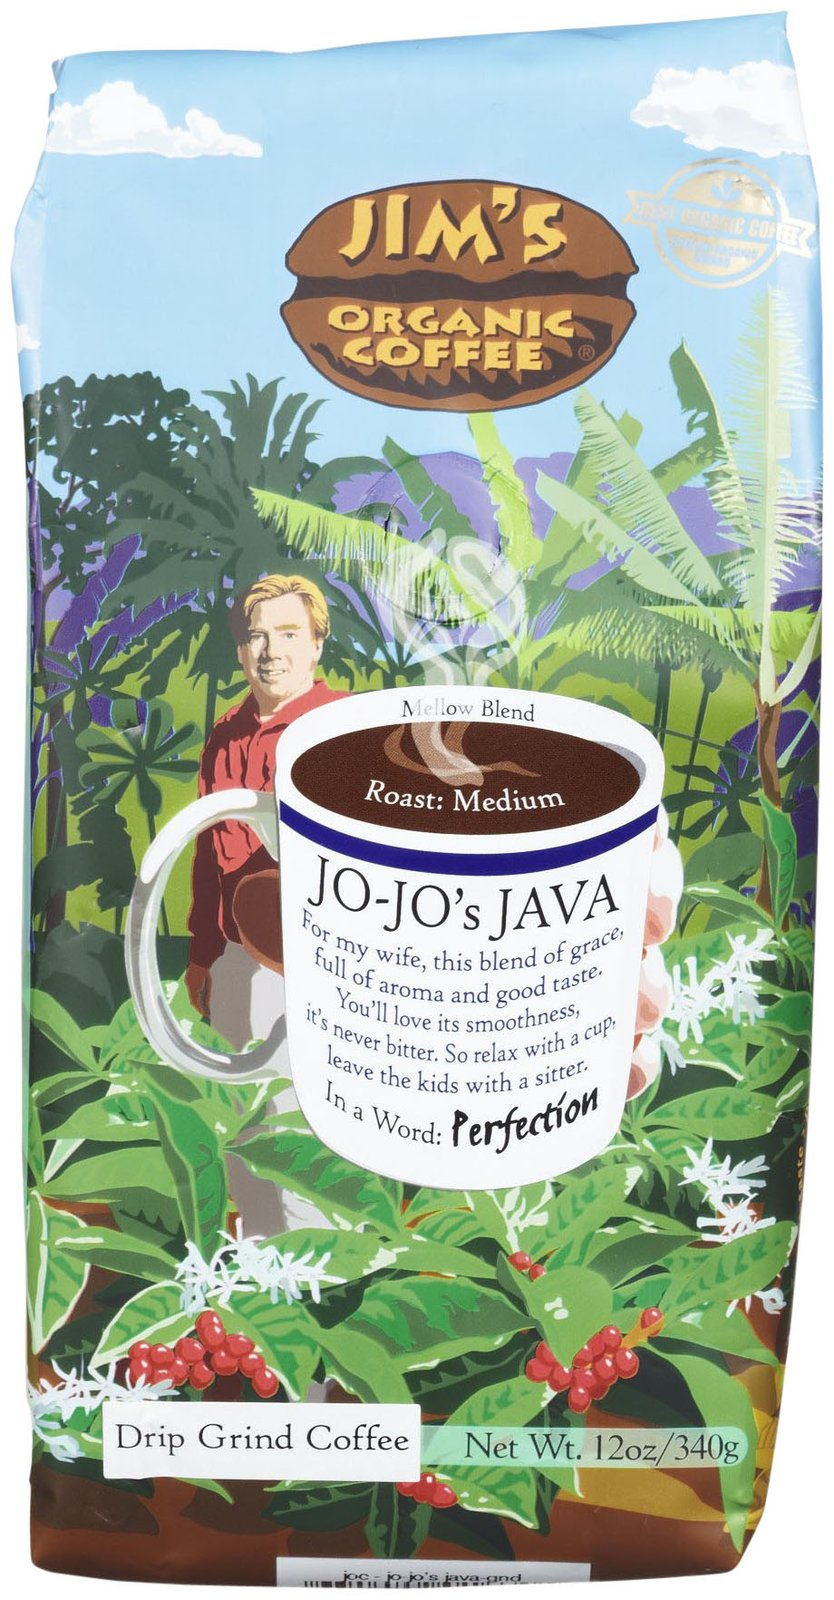 Jim's Organic Coffee Organic Jo Jo's Java Ground Coffee, 12 oz